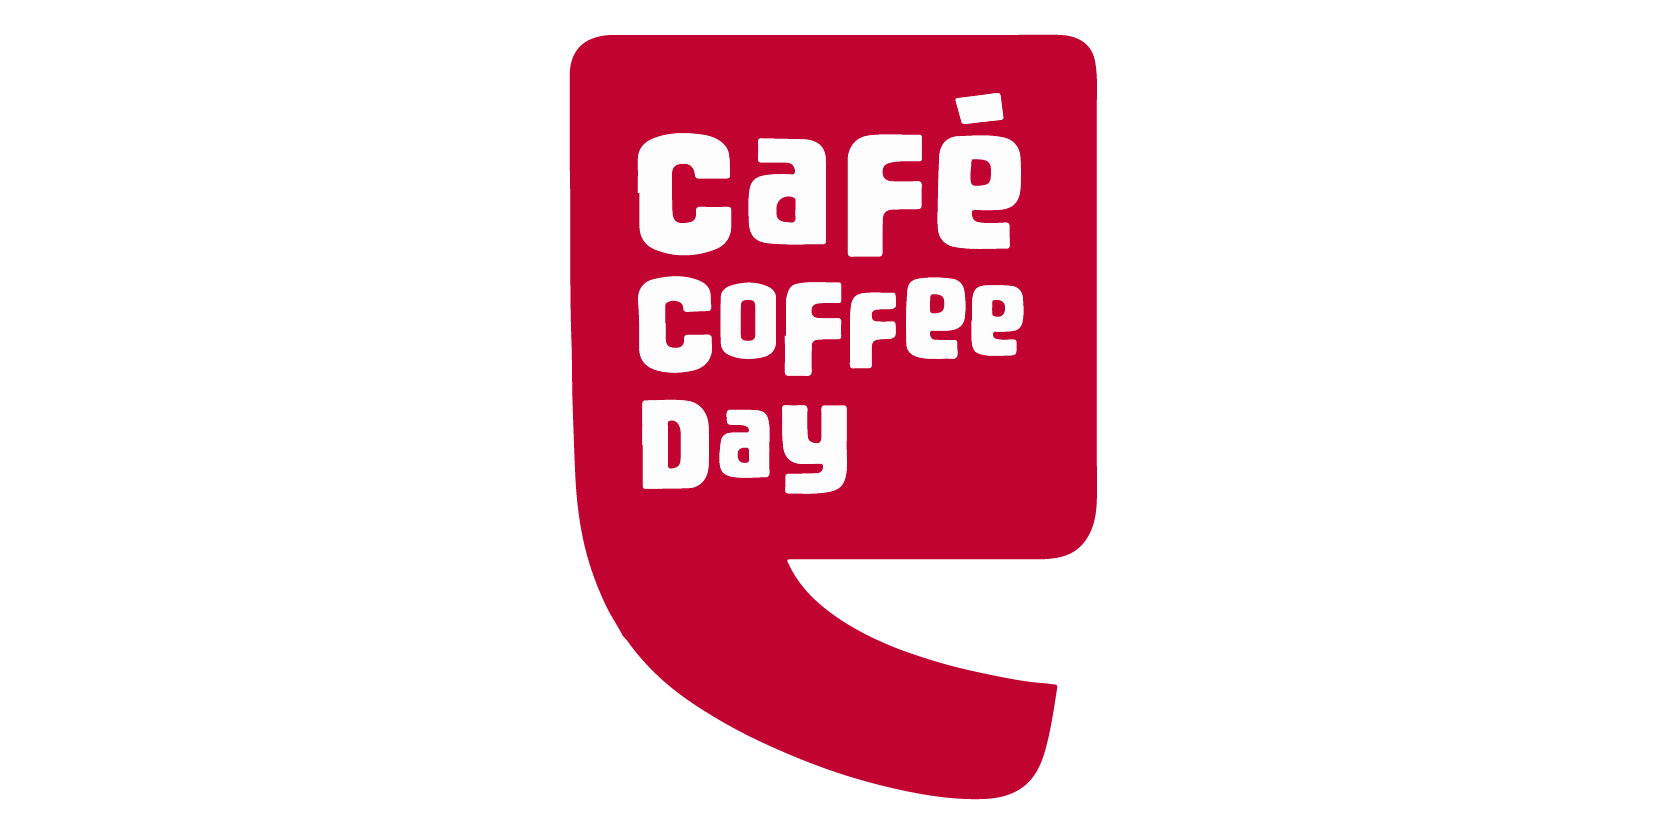 CCD Cafe Coffee Day logo transparent